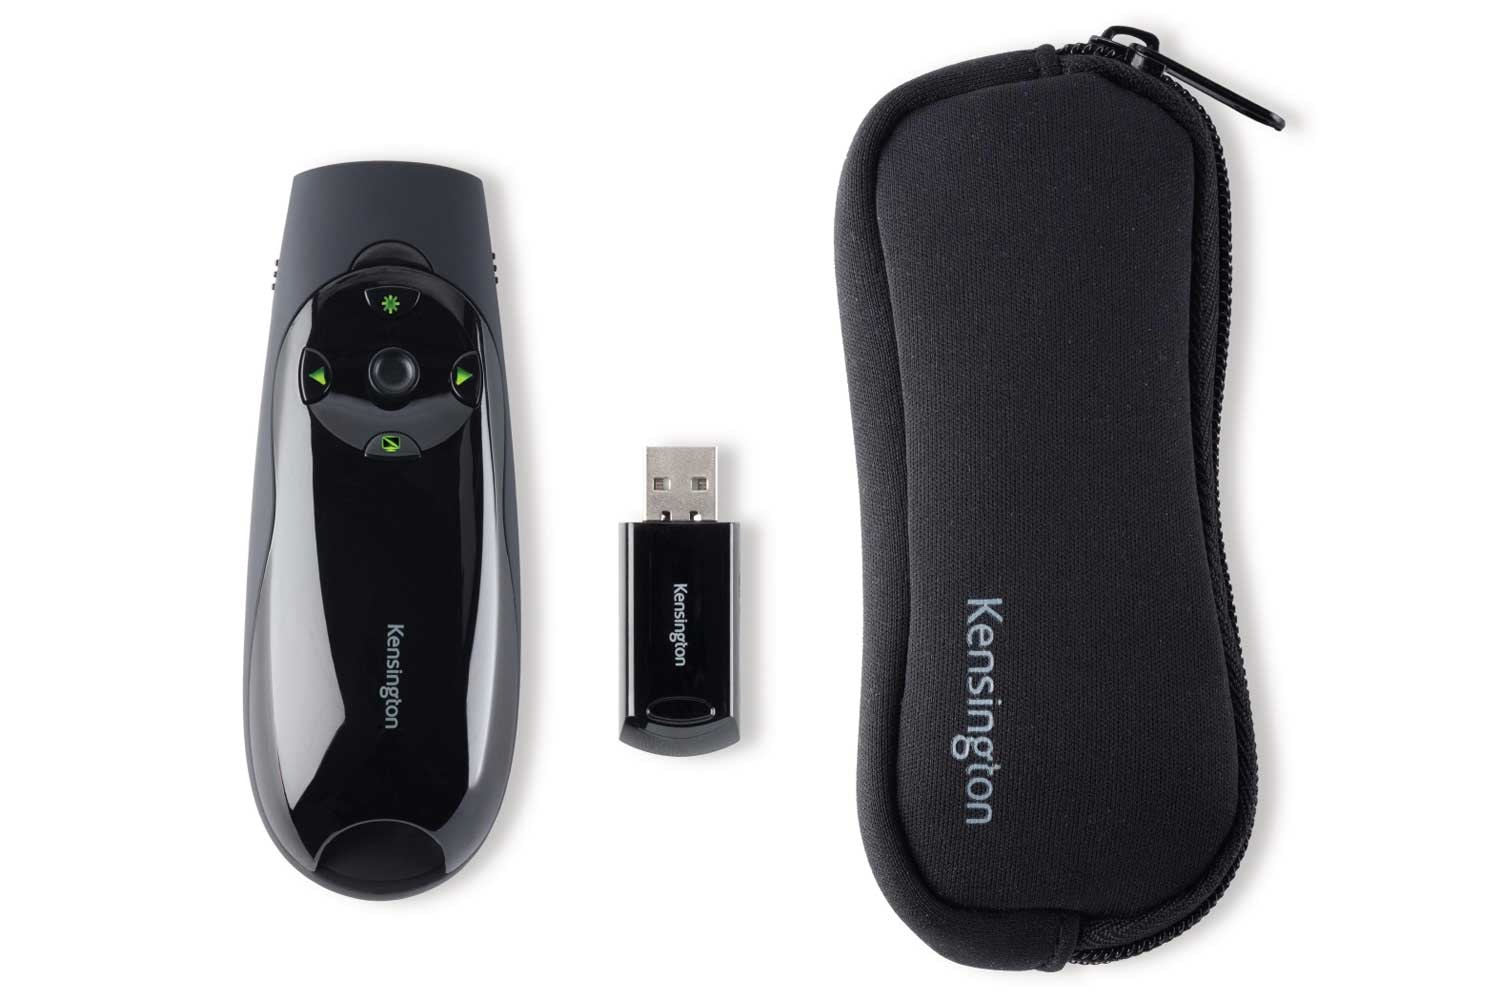 Kensington Wireless Presenter Remote Control With Green Laser